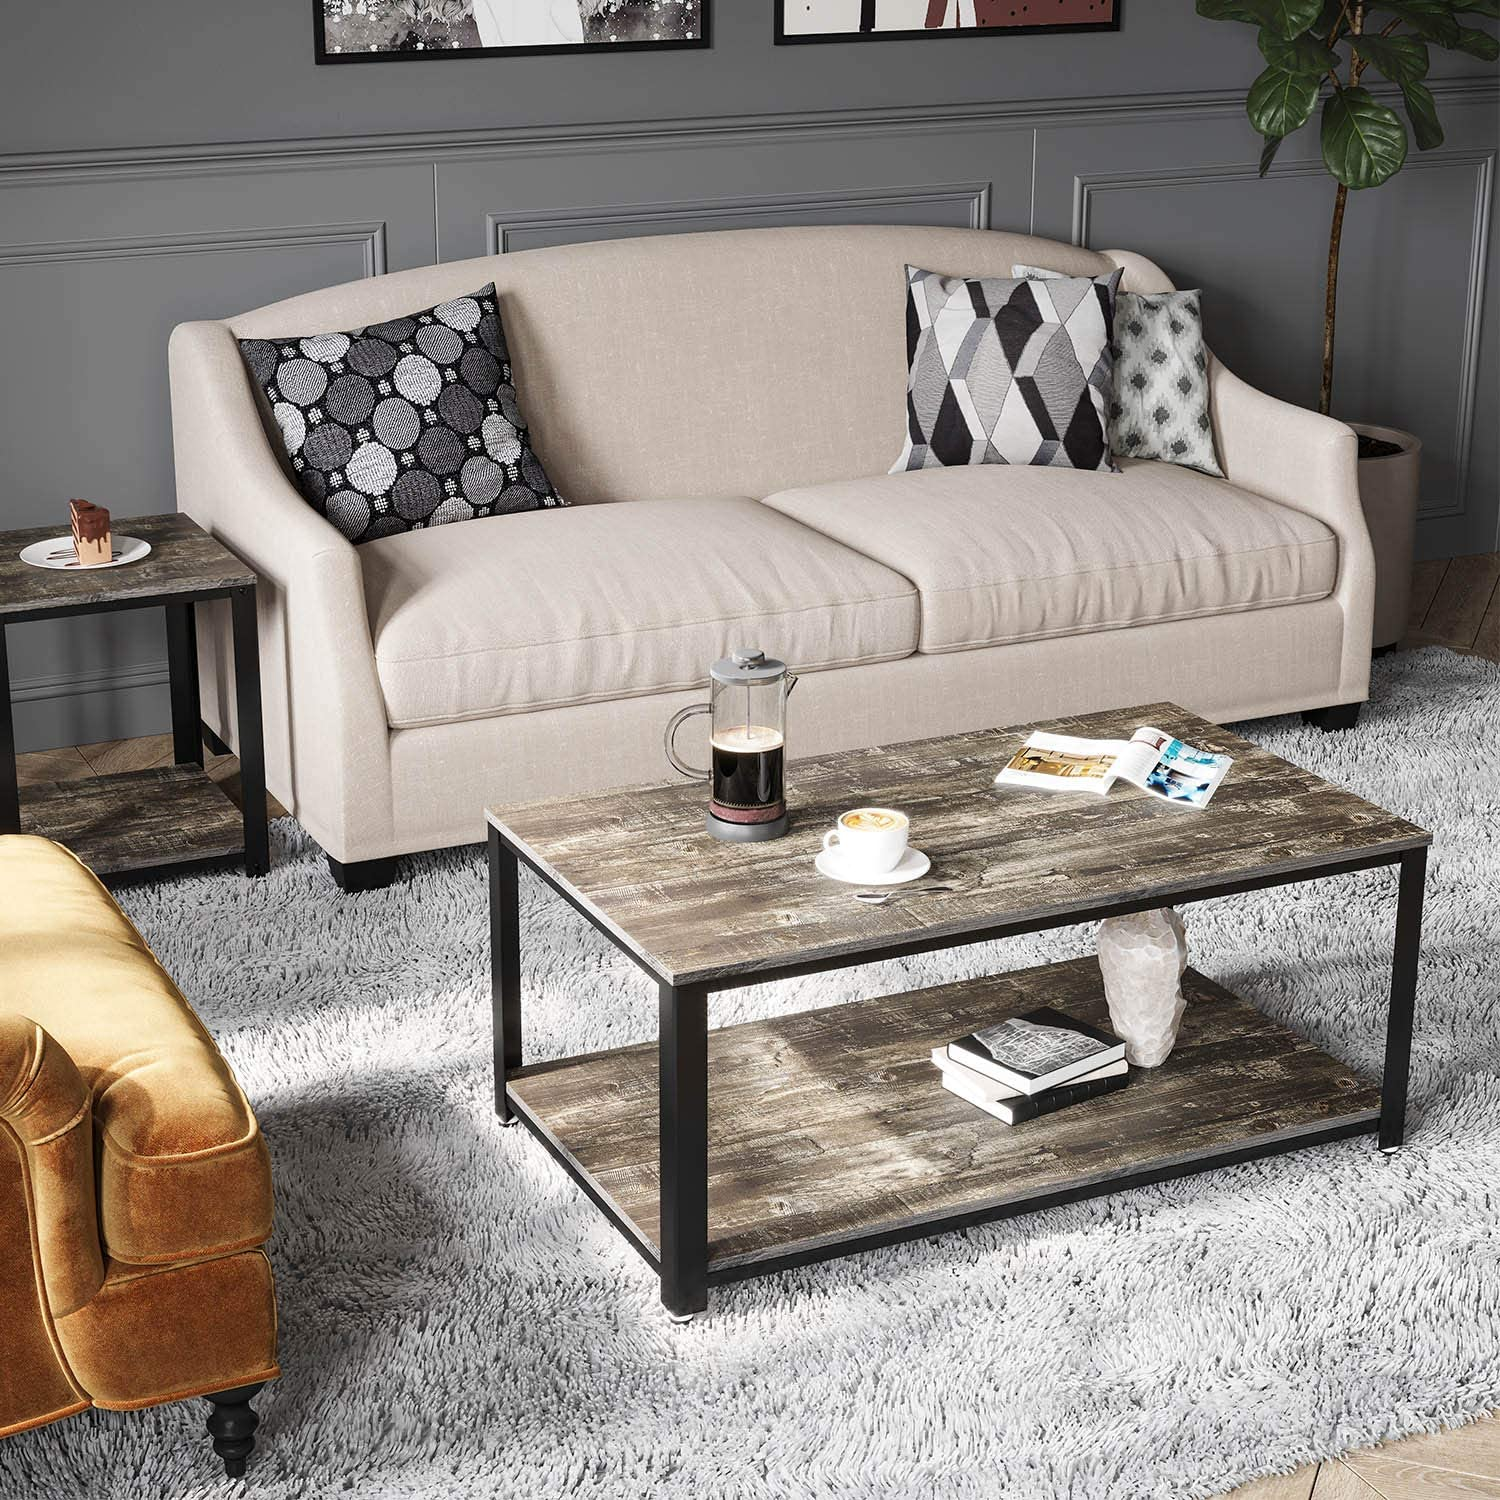 Rolanstar Coffee Table with Storage Shelf, Industrial Coffee Table for Living Room, Wood Look Accent Furniture with Stable Metal Frame CF001-C.